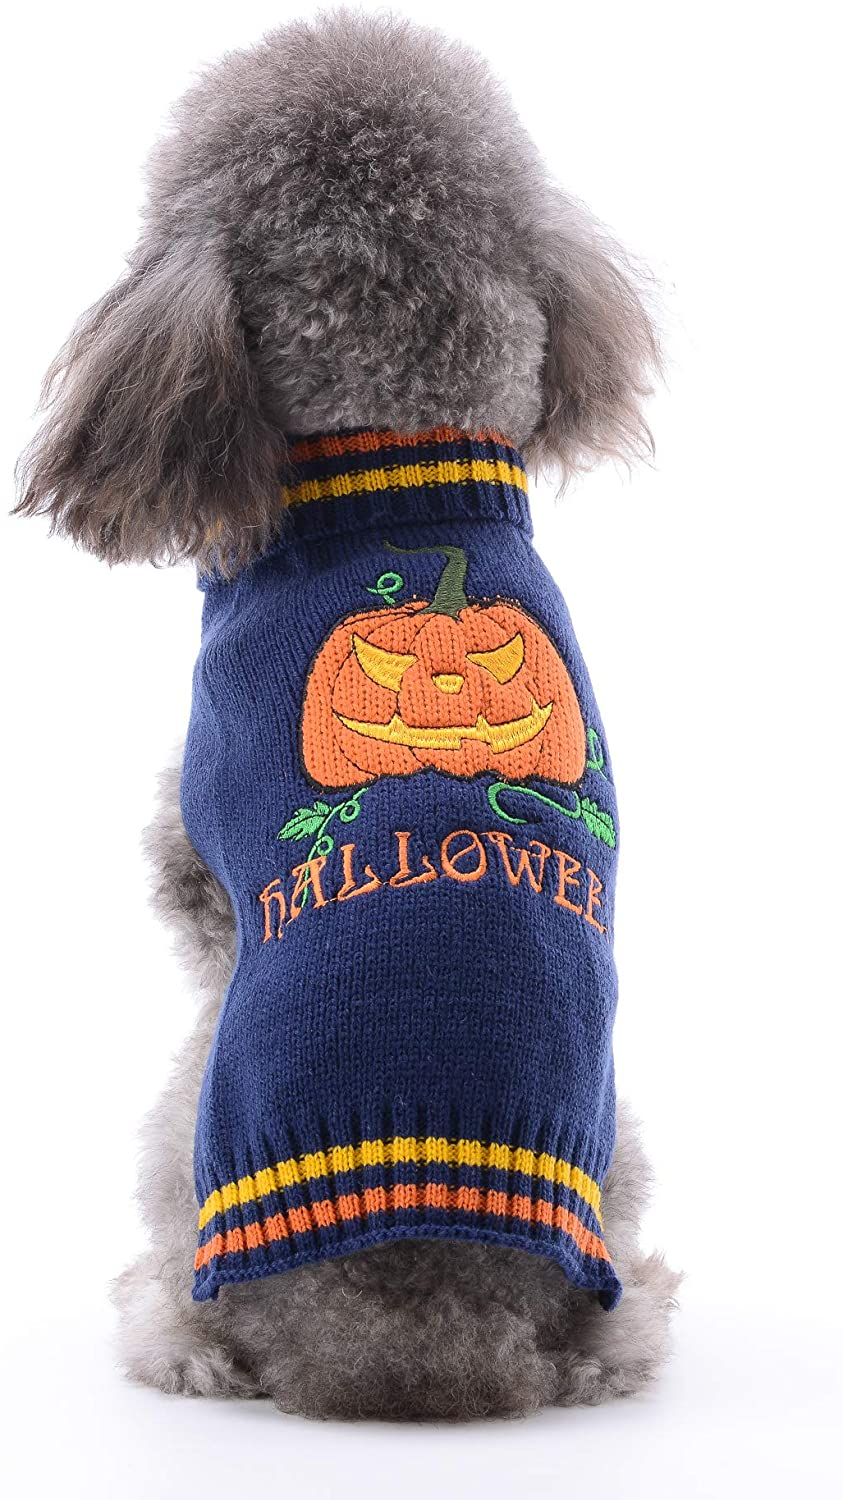 PETCARE Halloween Dog Clothes Warm Knit Turtleneck Dog Sweater Vest for Extra Small Medium Dogs Cats Pumpkin Pattern Pullover Pet Cute Halloween Costume for Fall Winter Fashion Dog Jumper